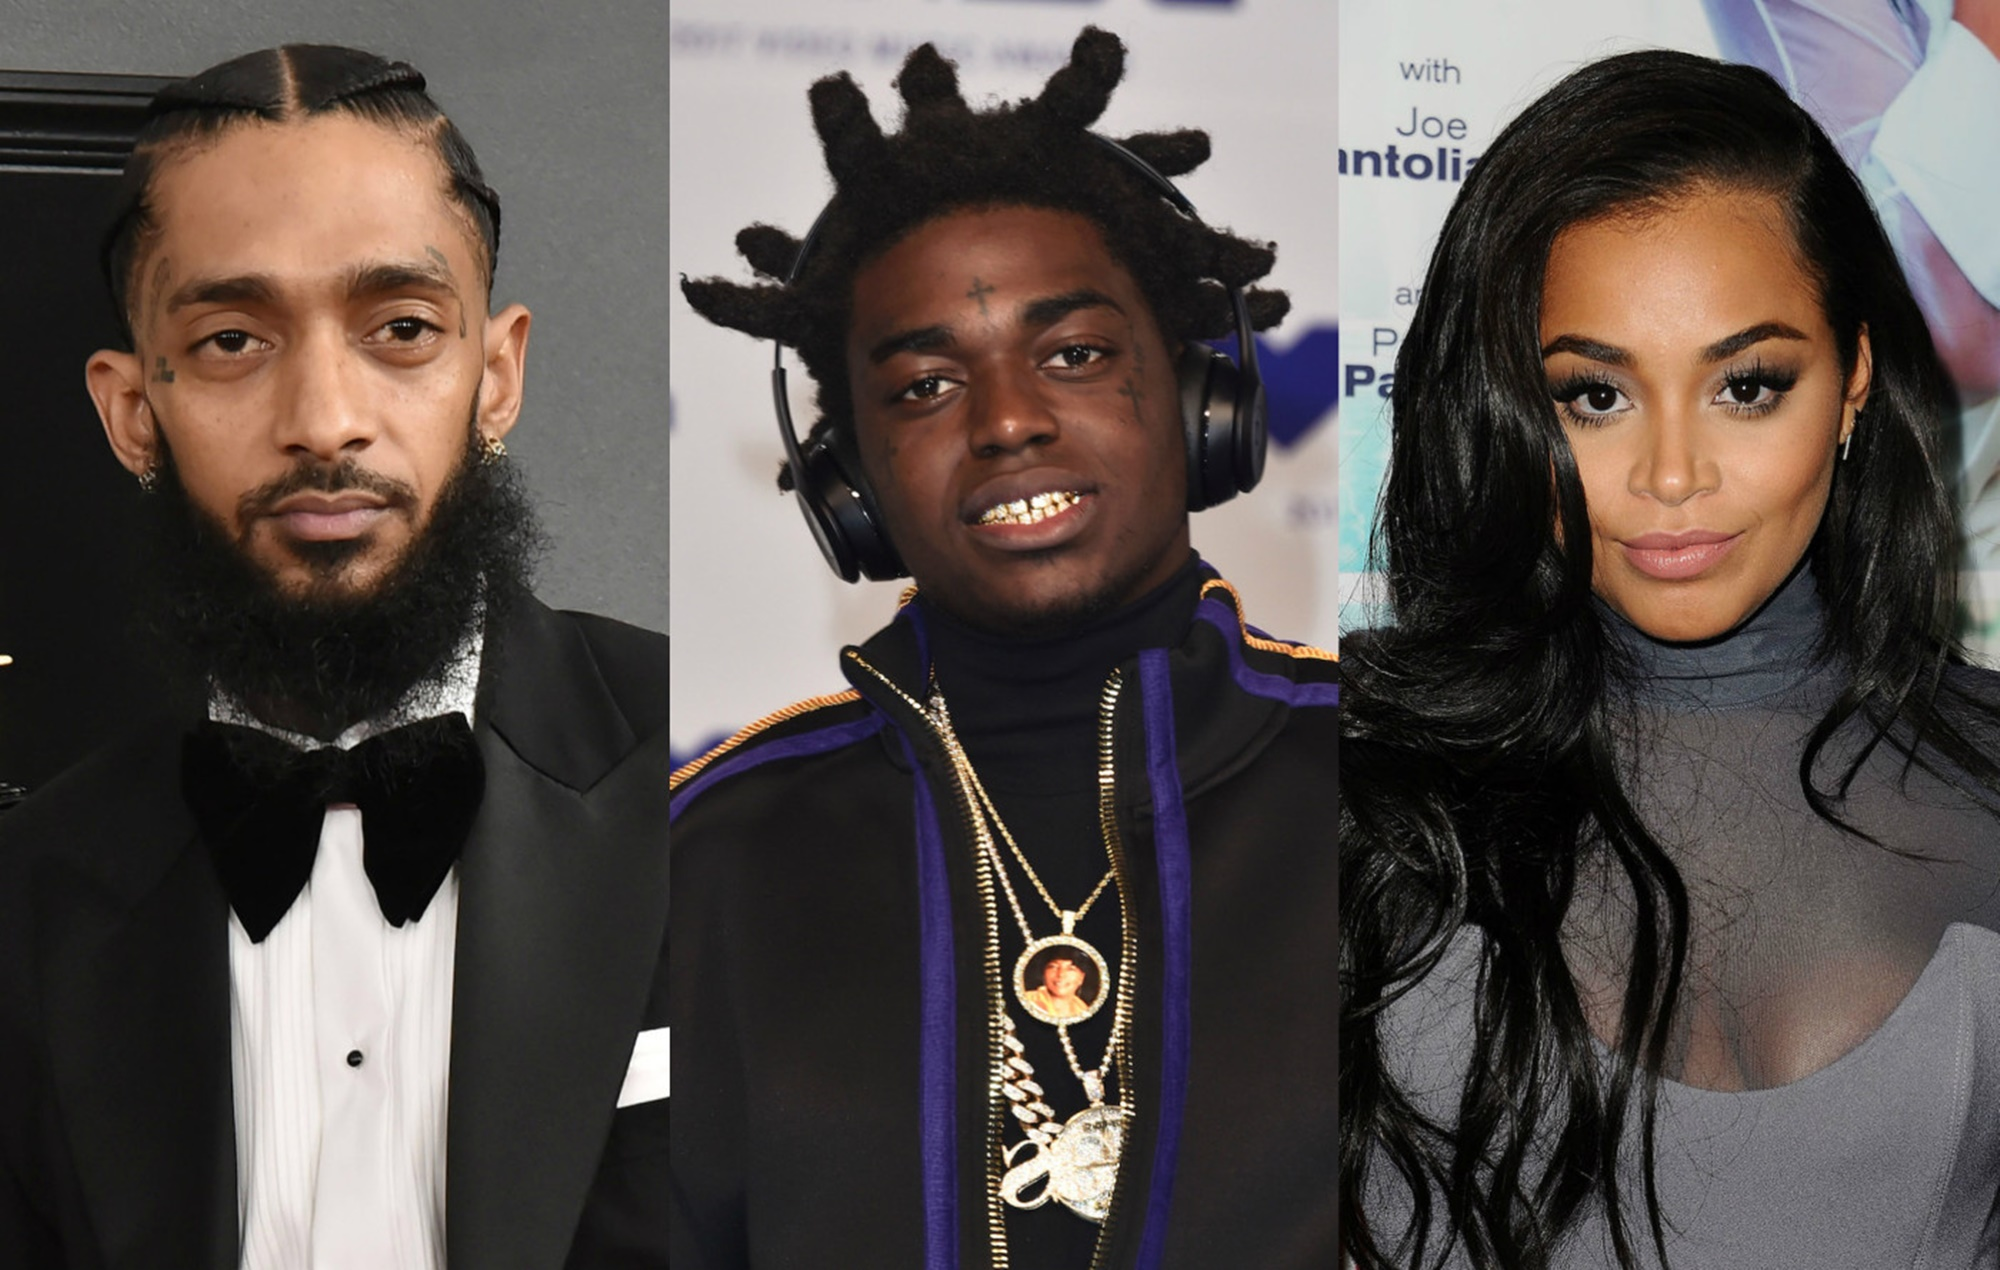 kodak-black-claims-t-i-wants-to-sleep-with-lauren-london-tiny-harris-husband-responds-in-new-video-that-has-fans-feeling-confused